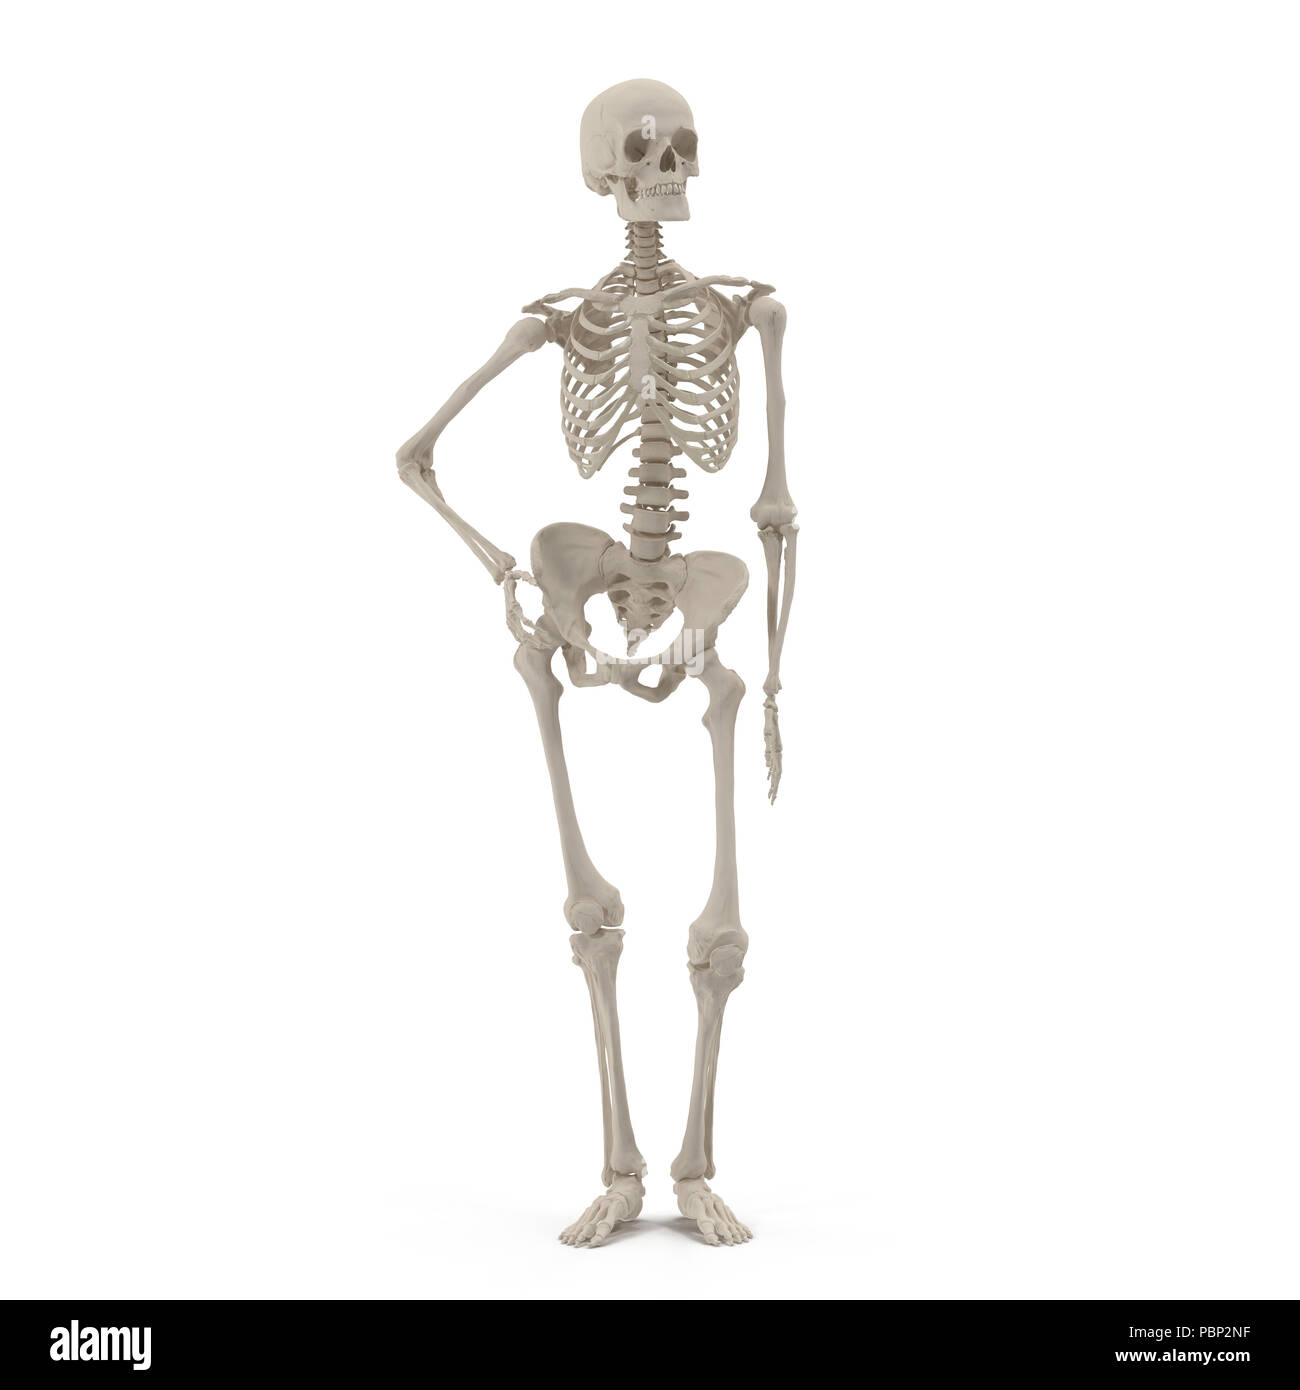 Human Female Skeleton Standing Pose On White Front View 3d